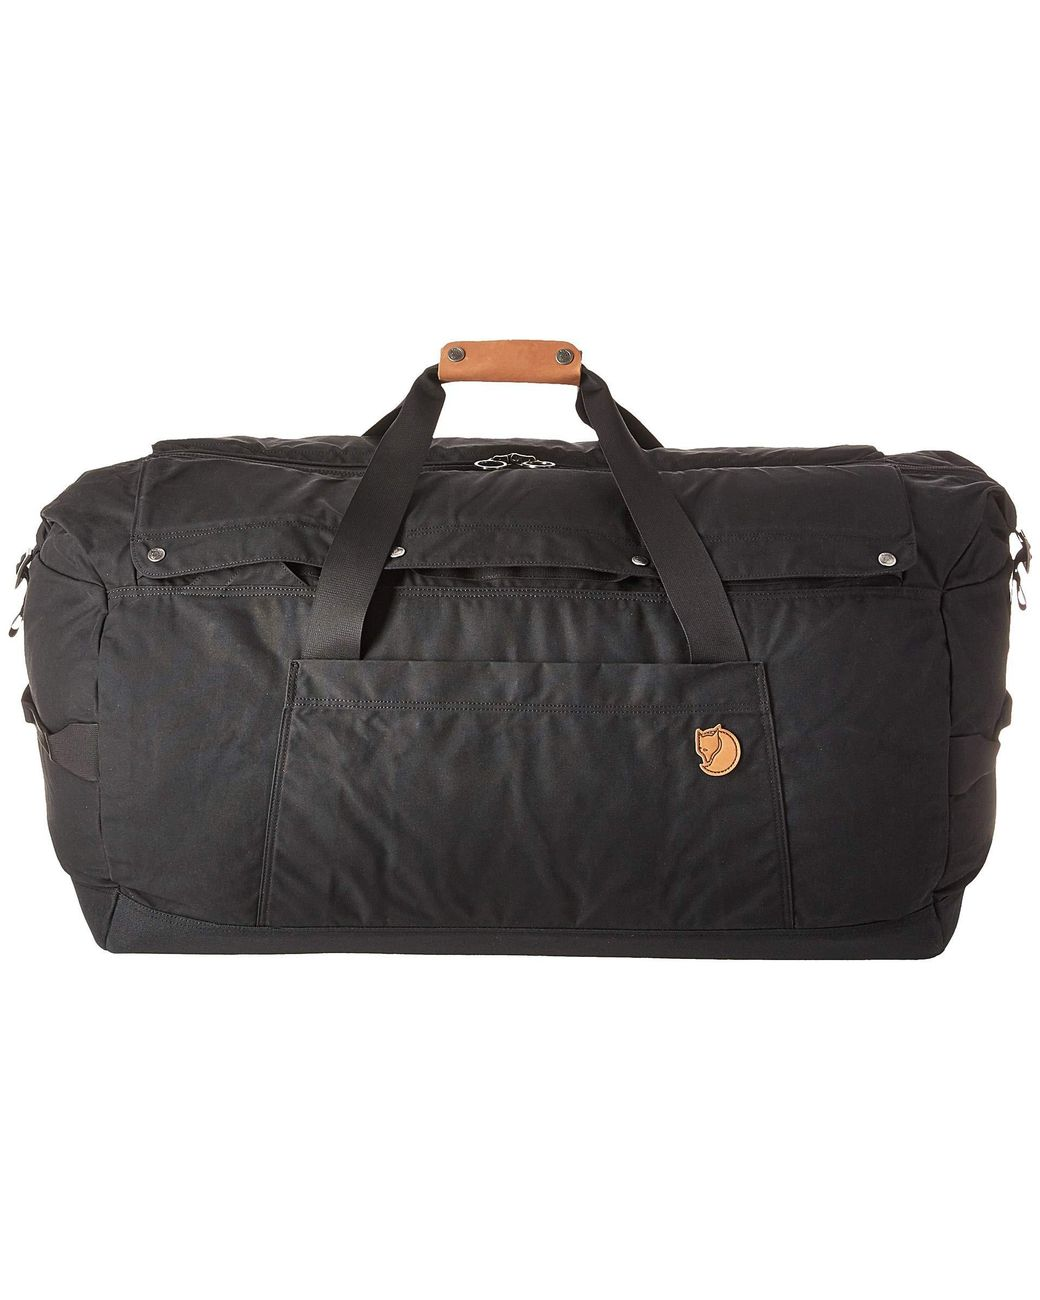 583e0cf8a35 Lyst - Fjallraven Duffel No.6 Large (black) Bags in Black for Men